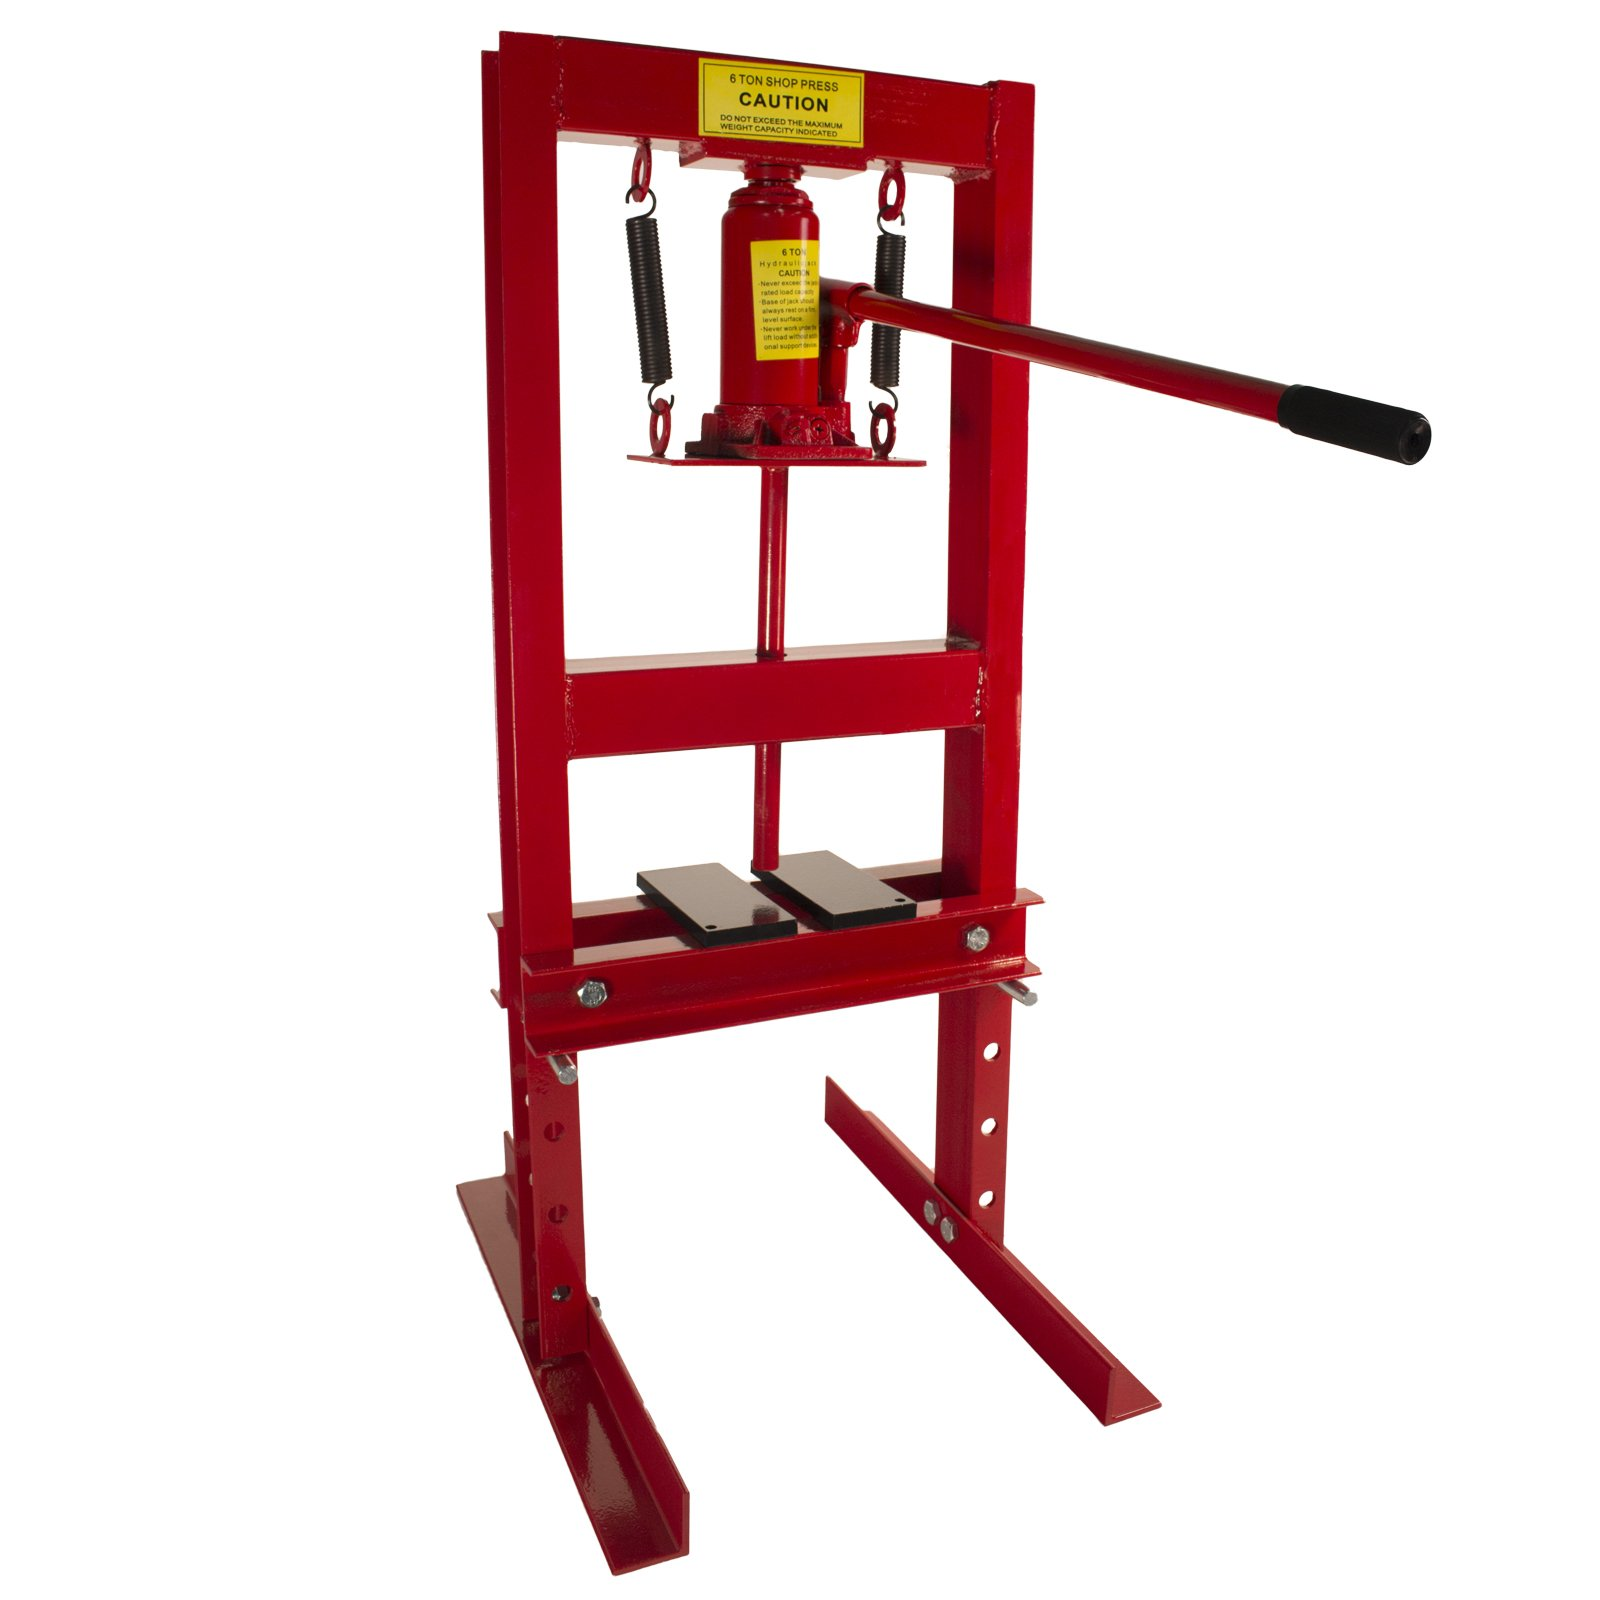 Dragway Tools 6-Ton Hydraulic Shop Floor Press with Press Plates and H Frame is Ideal for Gears and Bearings by Dragway Tools (Image #1)